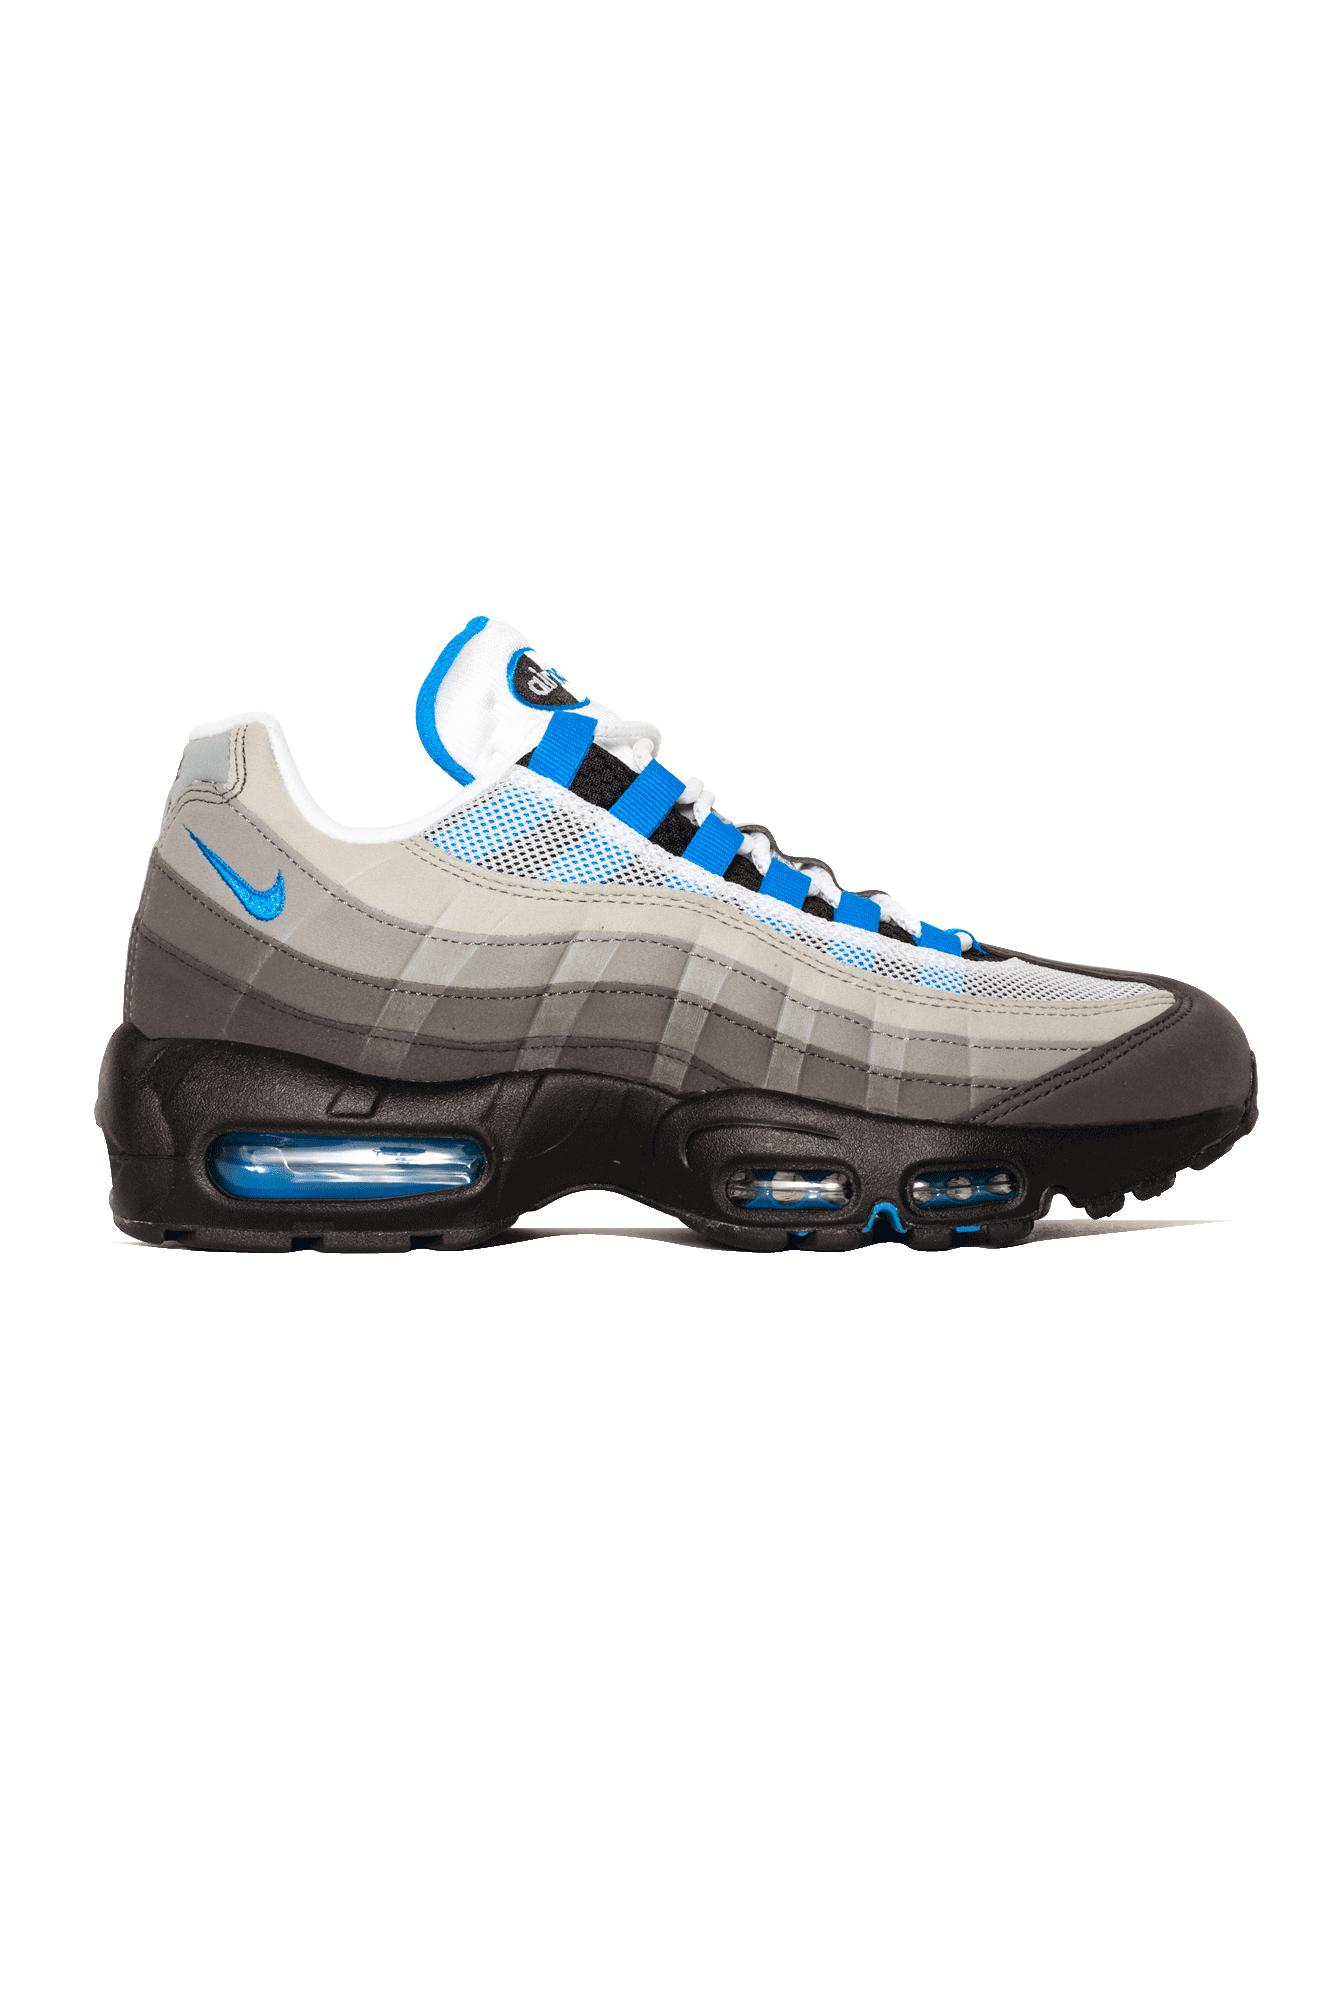 best service 4445f f6a94 Nike Sneakers Air Max 95 Grey AT8696-#000#100#4,5 - One Block Down